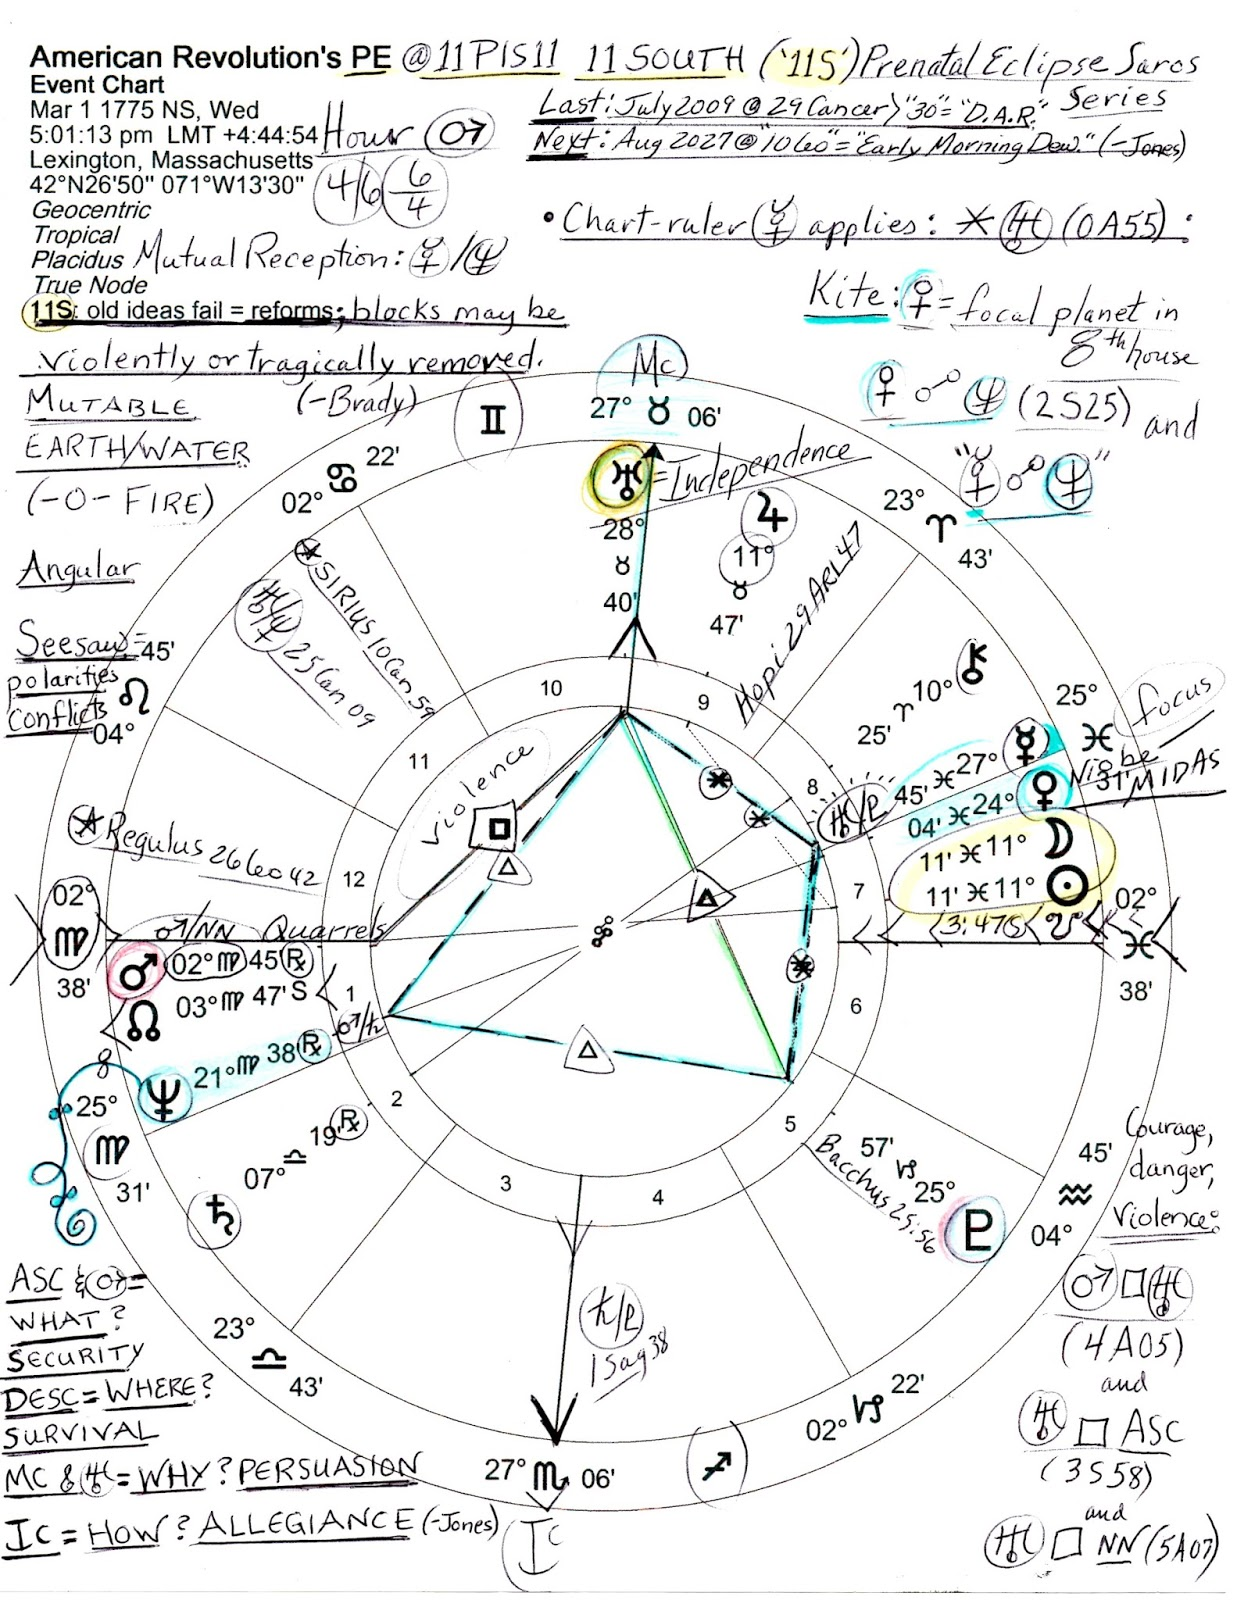 Stars over washington 2017 neptune hits american revolutions massachusetts the hour belongs to warrior planet mars the mutable earthwaterangular chart shows a seesaw shape of polarities and conflicts geenschuldenfo Image collections